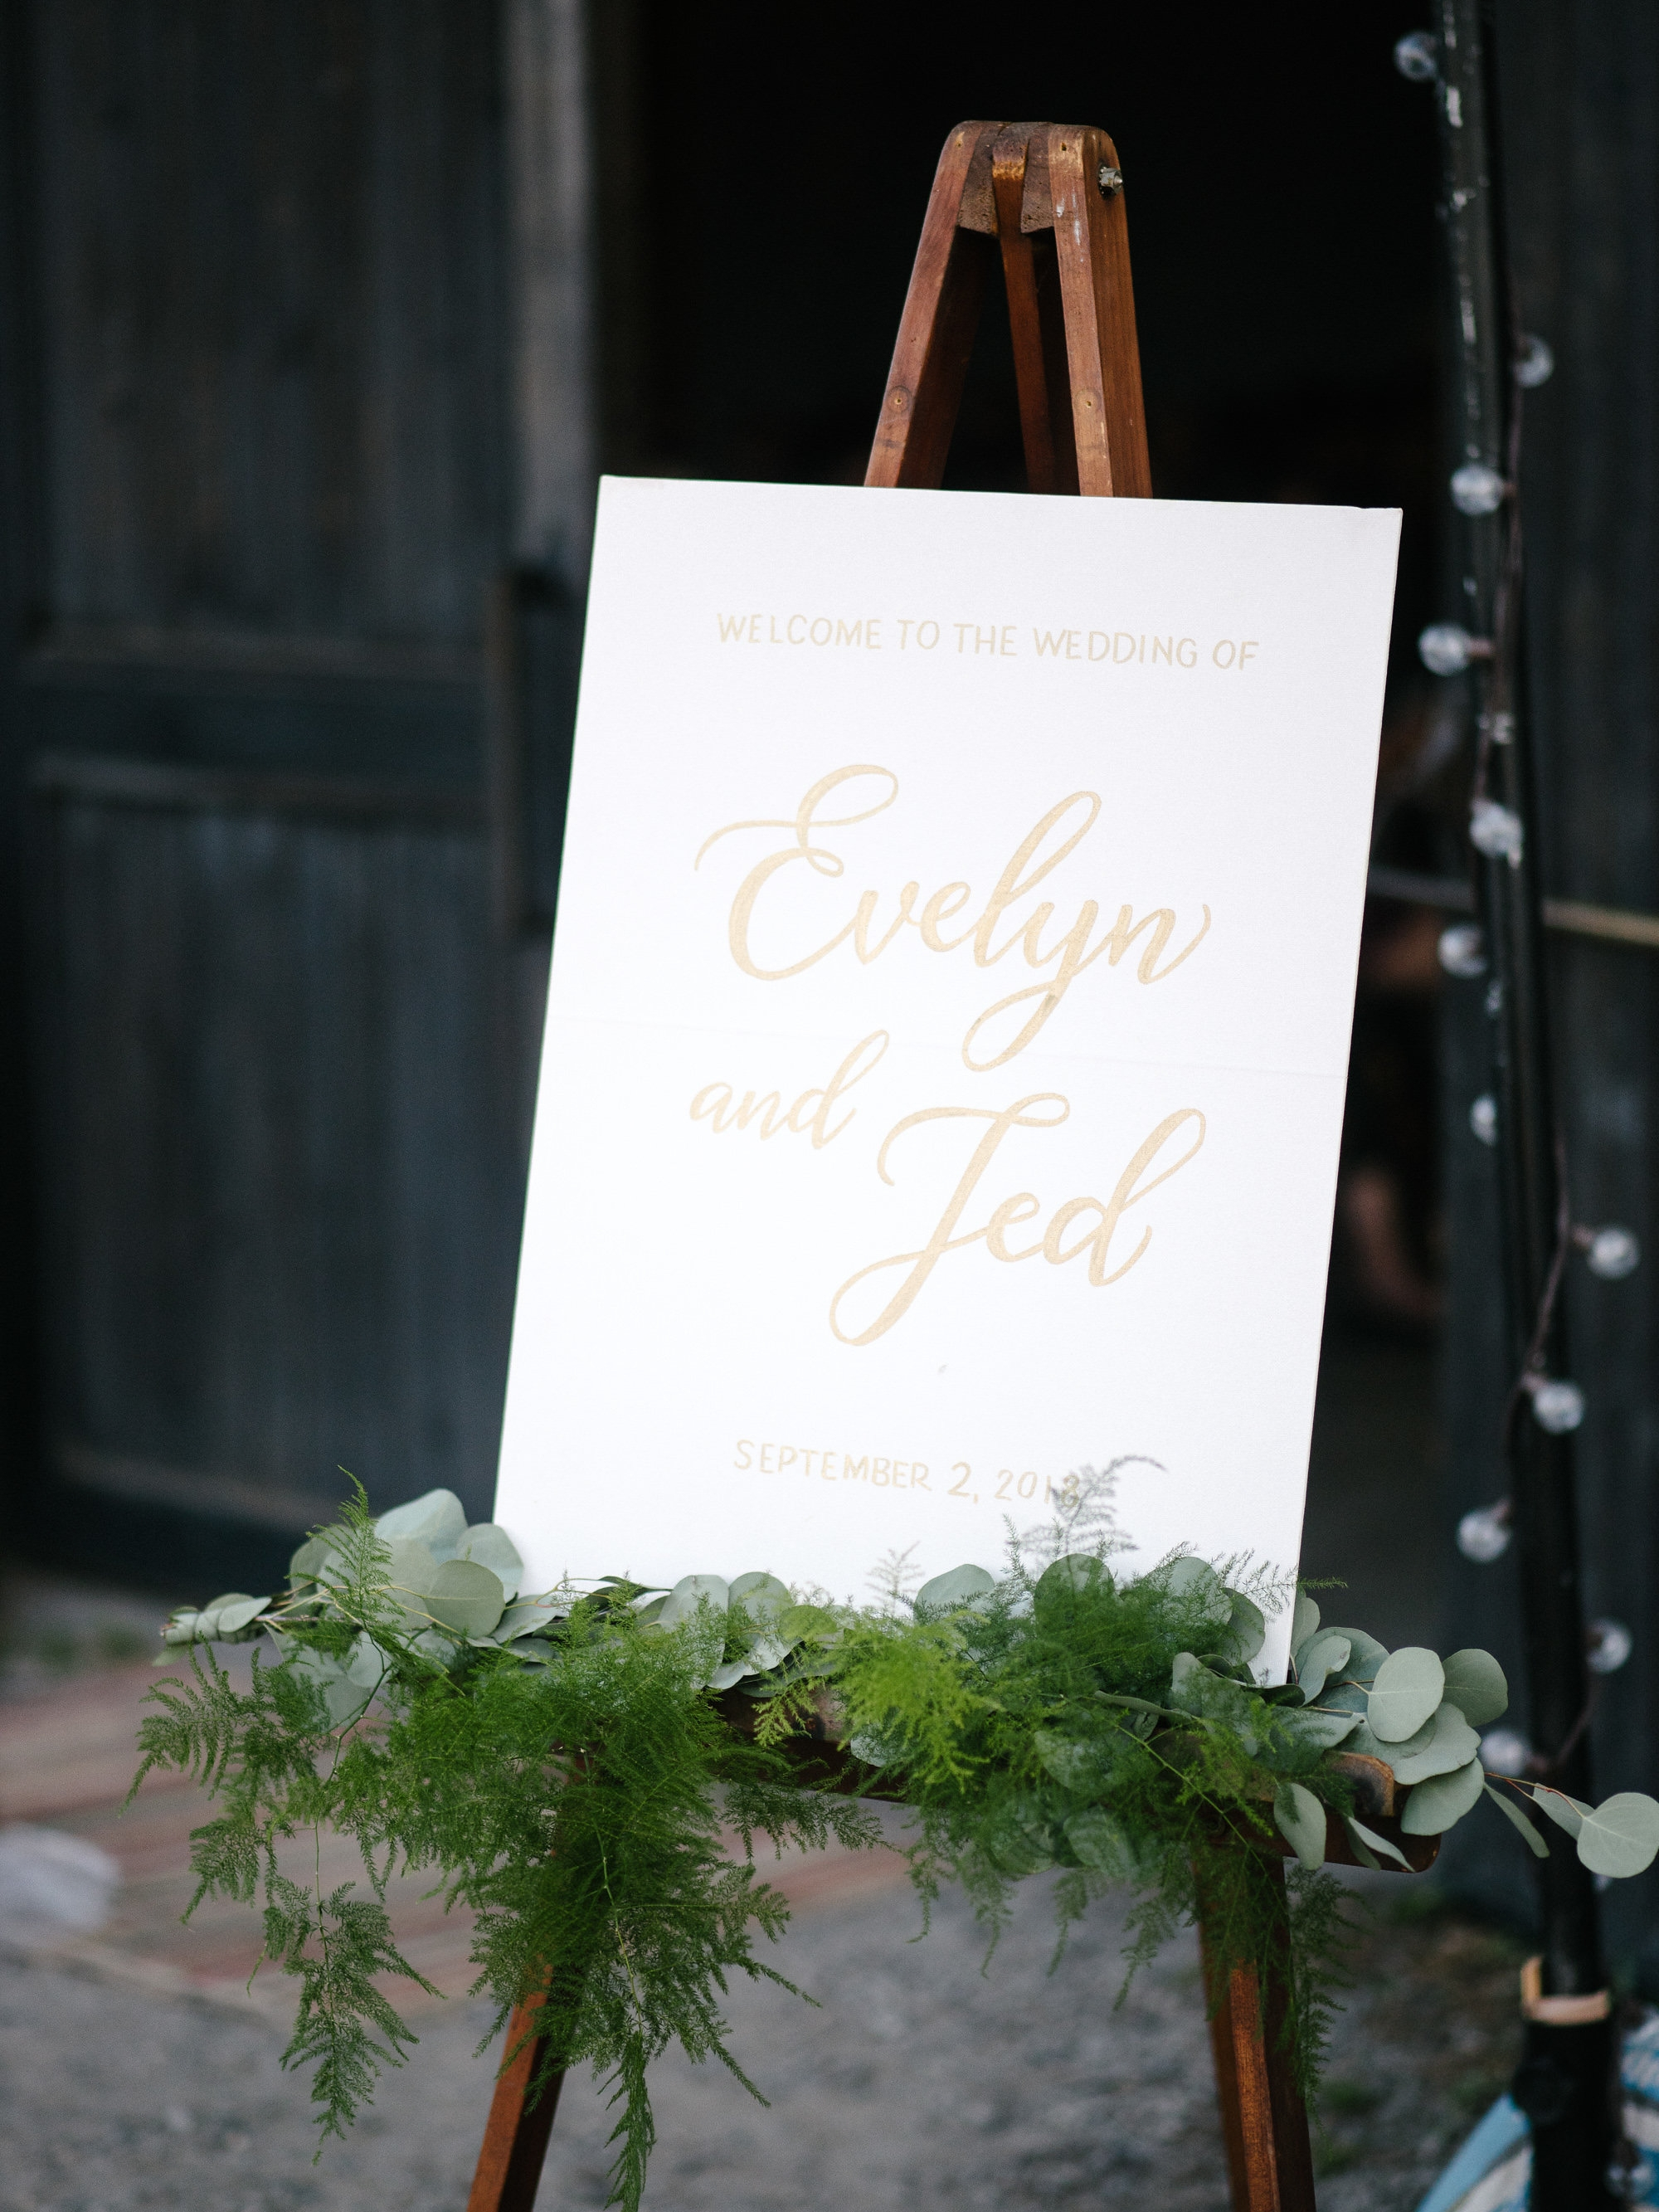 Wedding welcome sign, gold calligraphy on canvas // by www.chavelli.com, photography www.lisahibbert.com